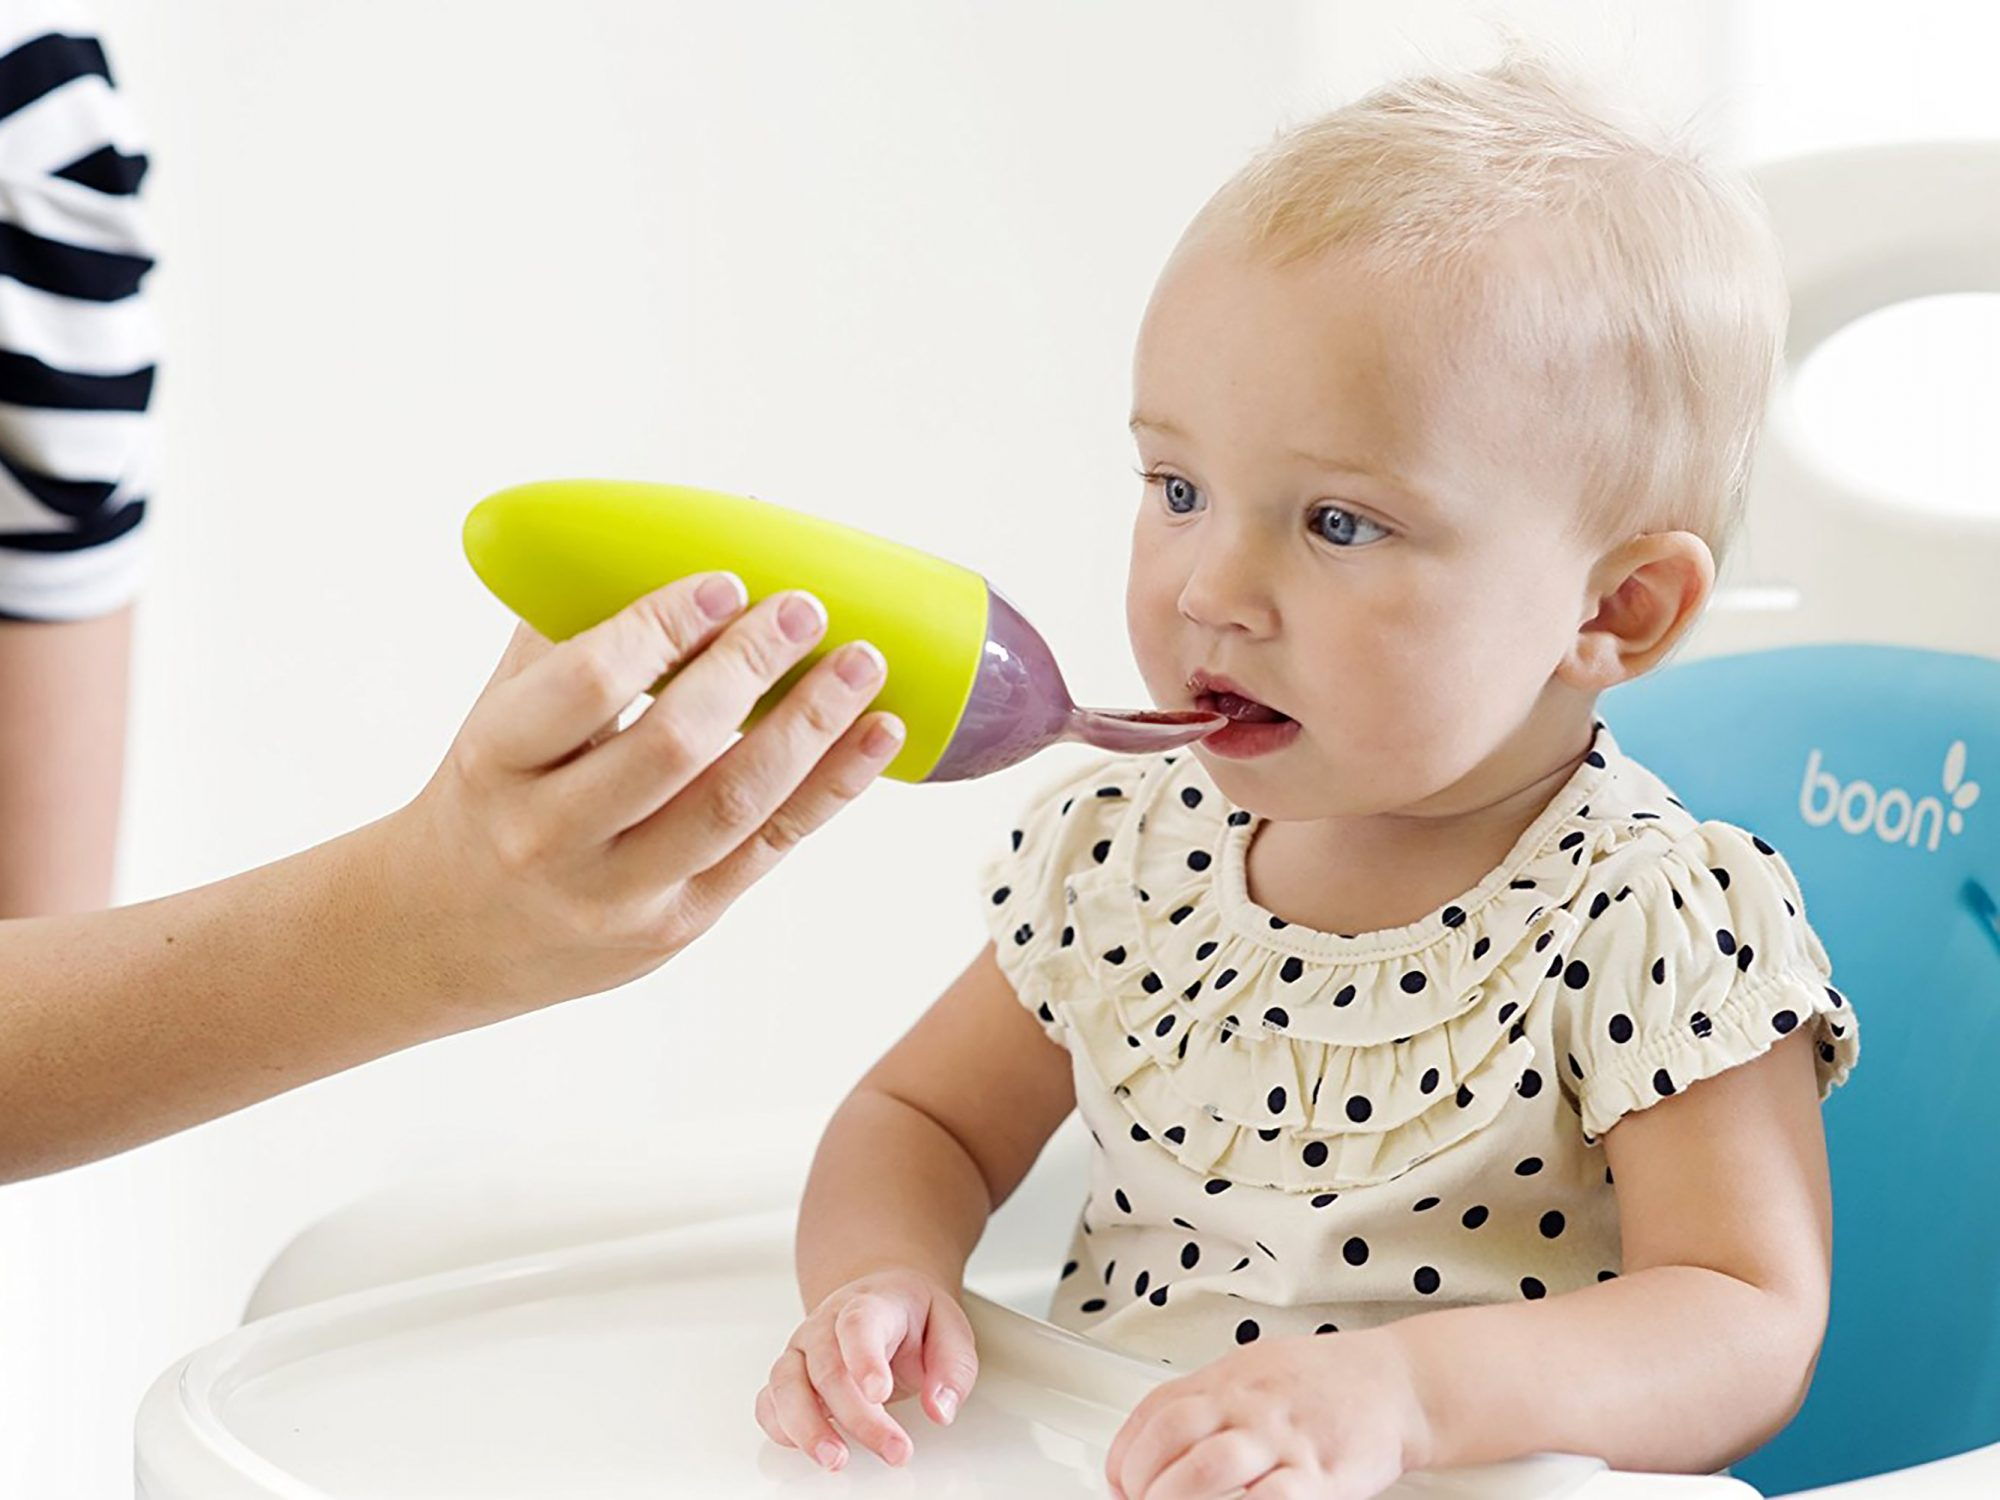 Report: Popular Baby Food Brands Contain High Levels of Arsenic, Other Contaminants